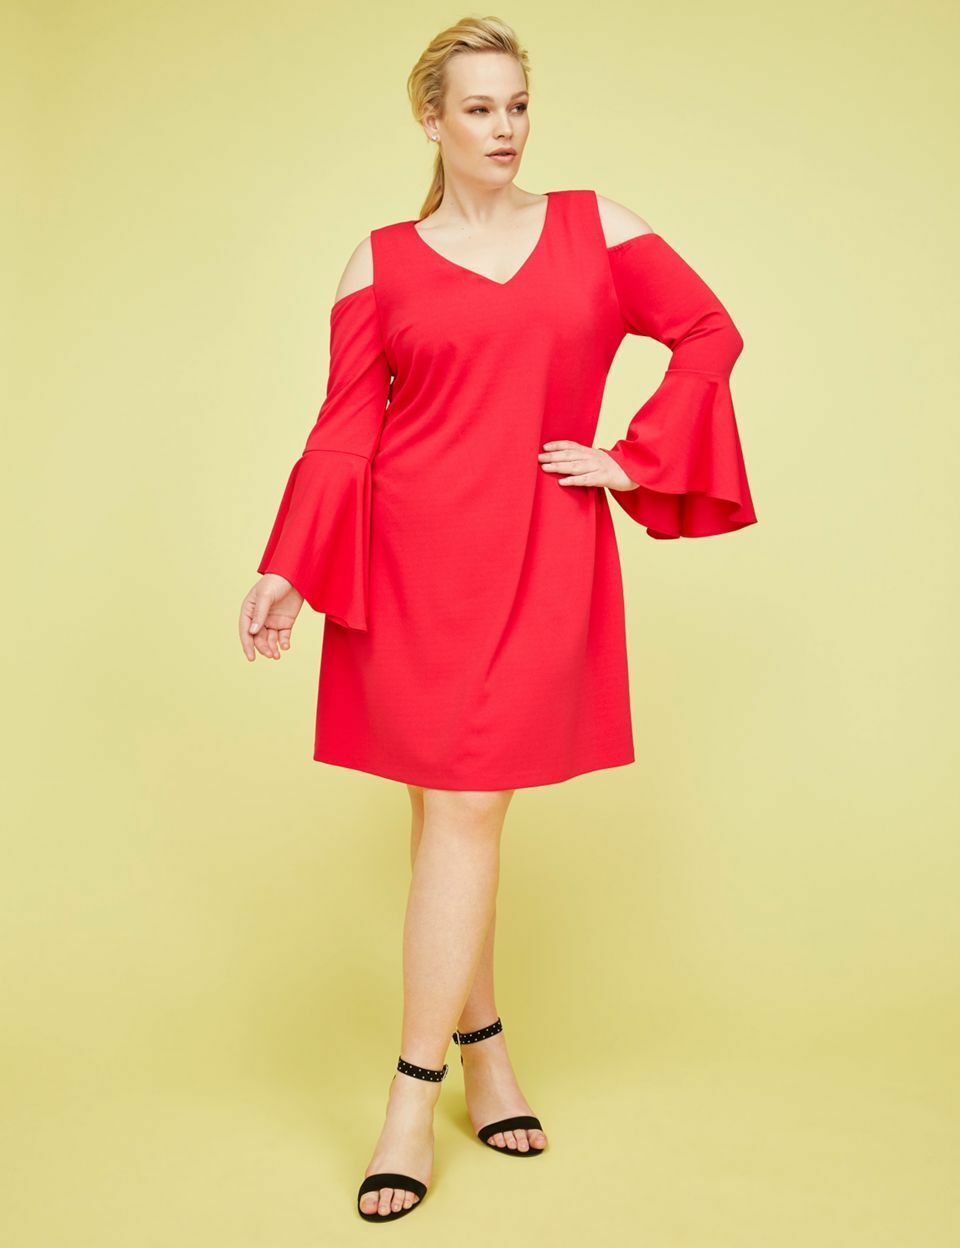 NEW LANE BRYANT PLUS SIZE pink RED COLD SHOULDER BELL SLEEVE DRESS SZ 28